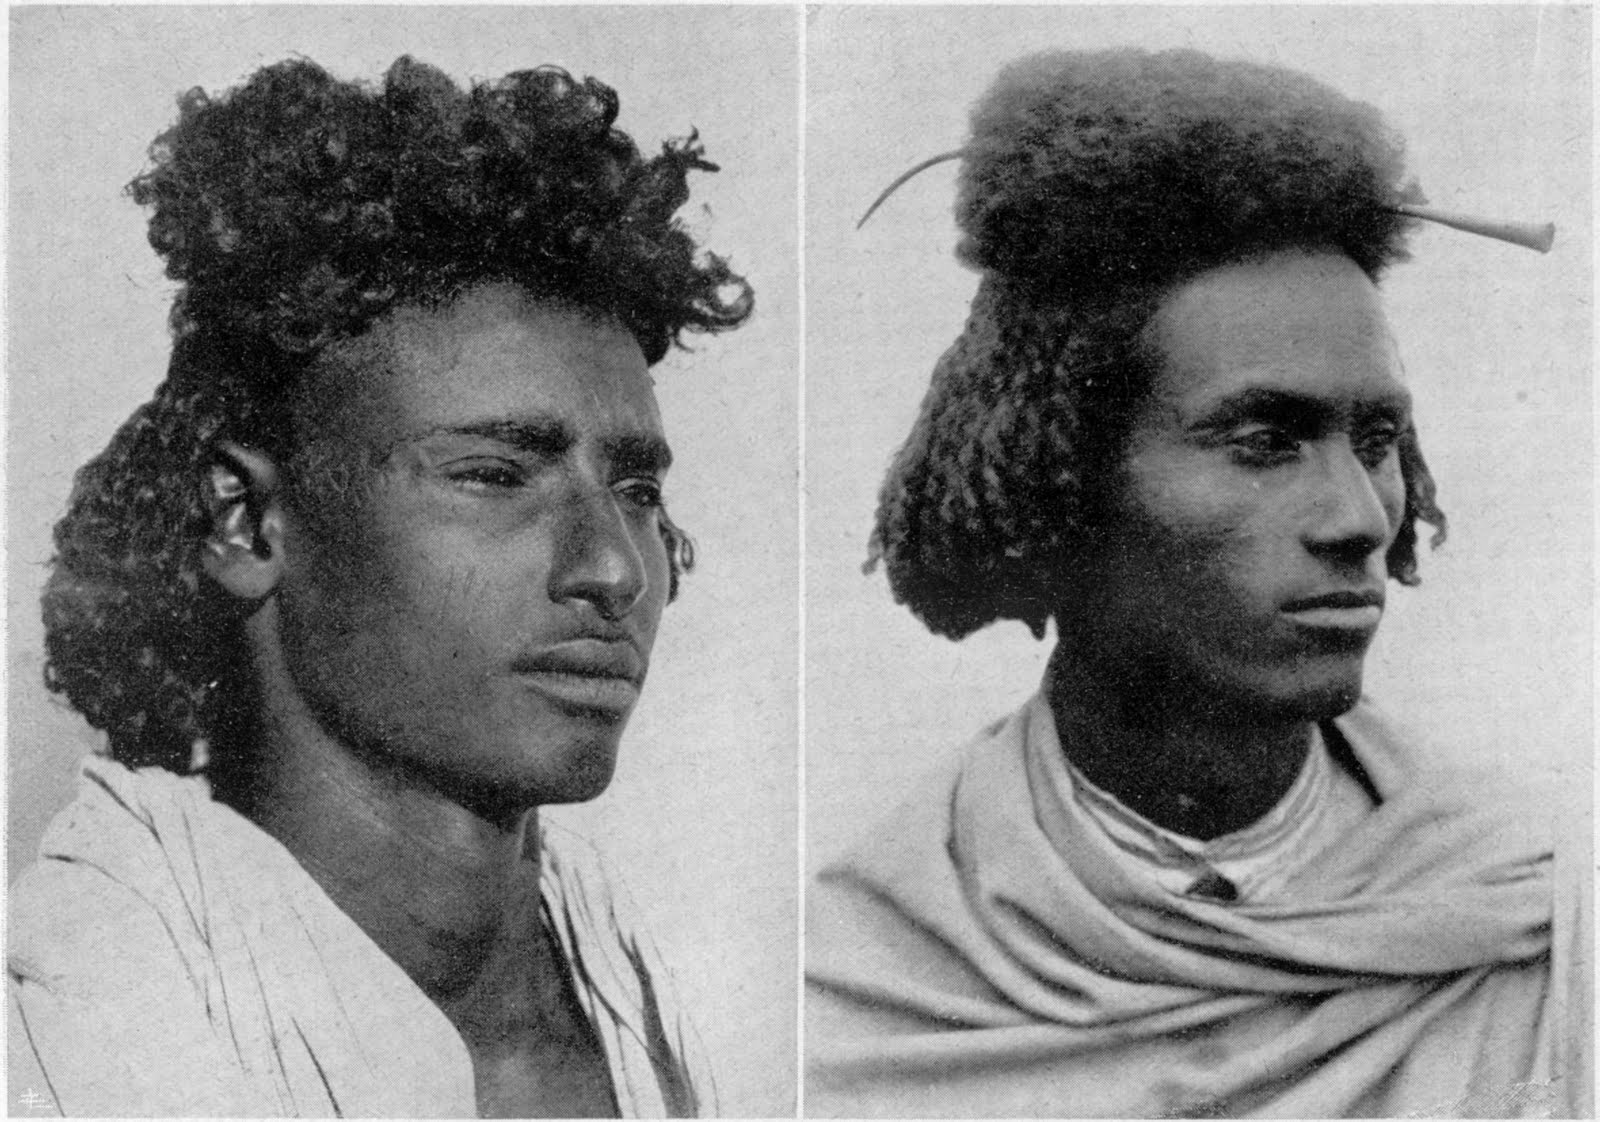 CHAUDRON: The Habab People from the lowlands of Eritrea. 1936.